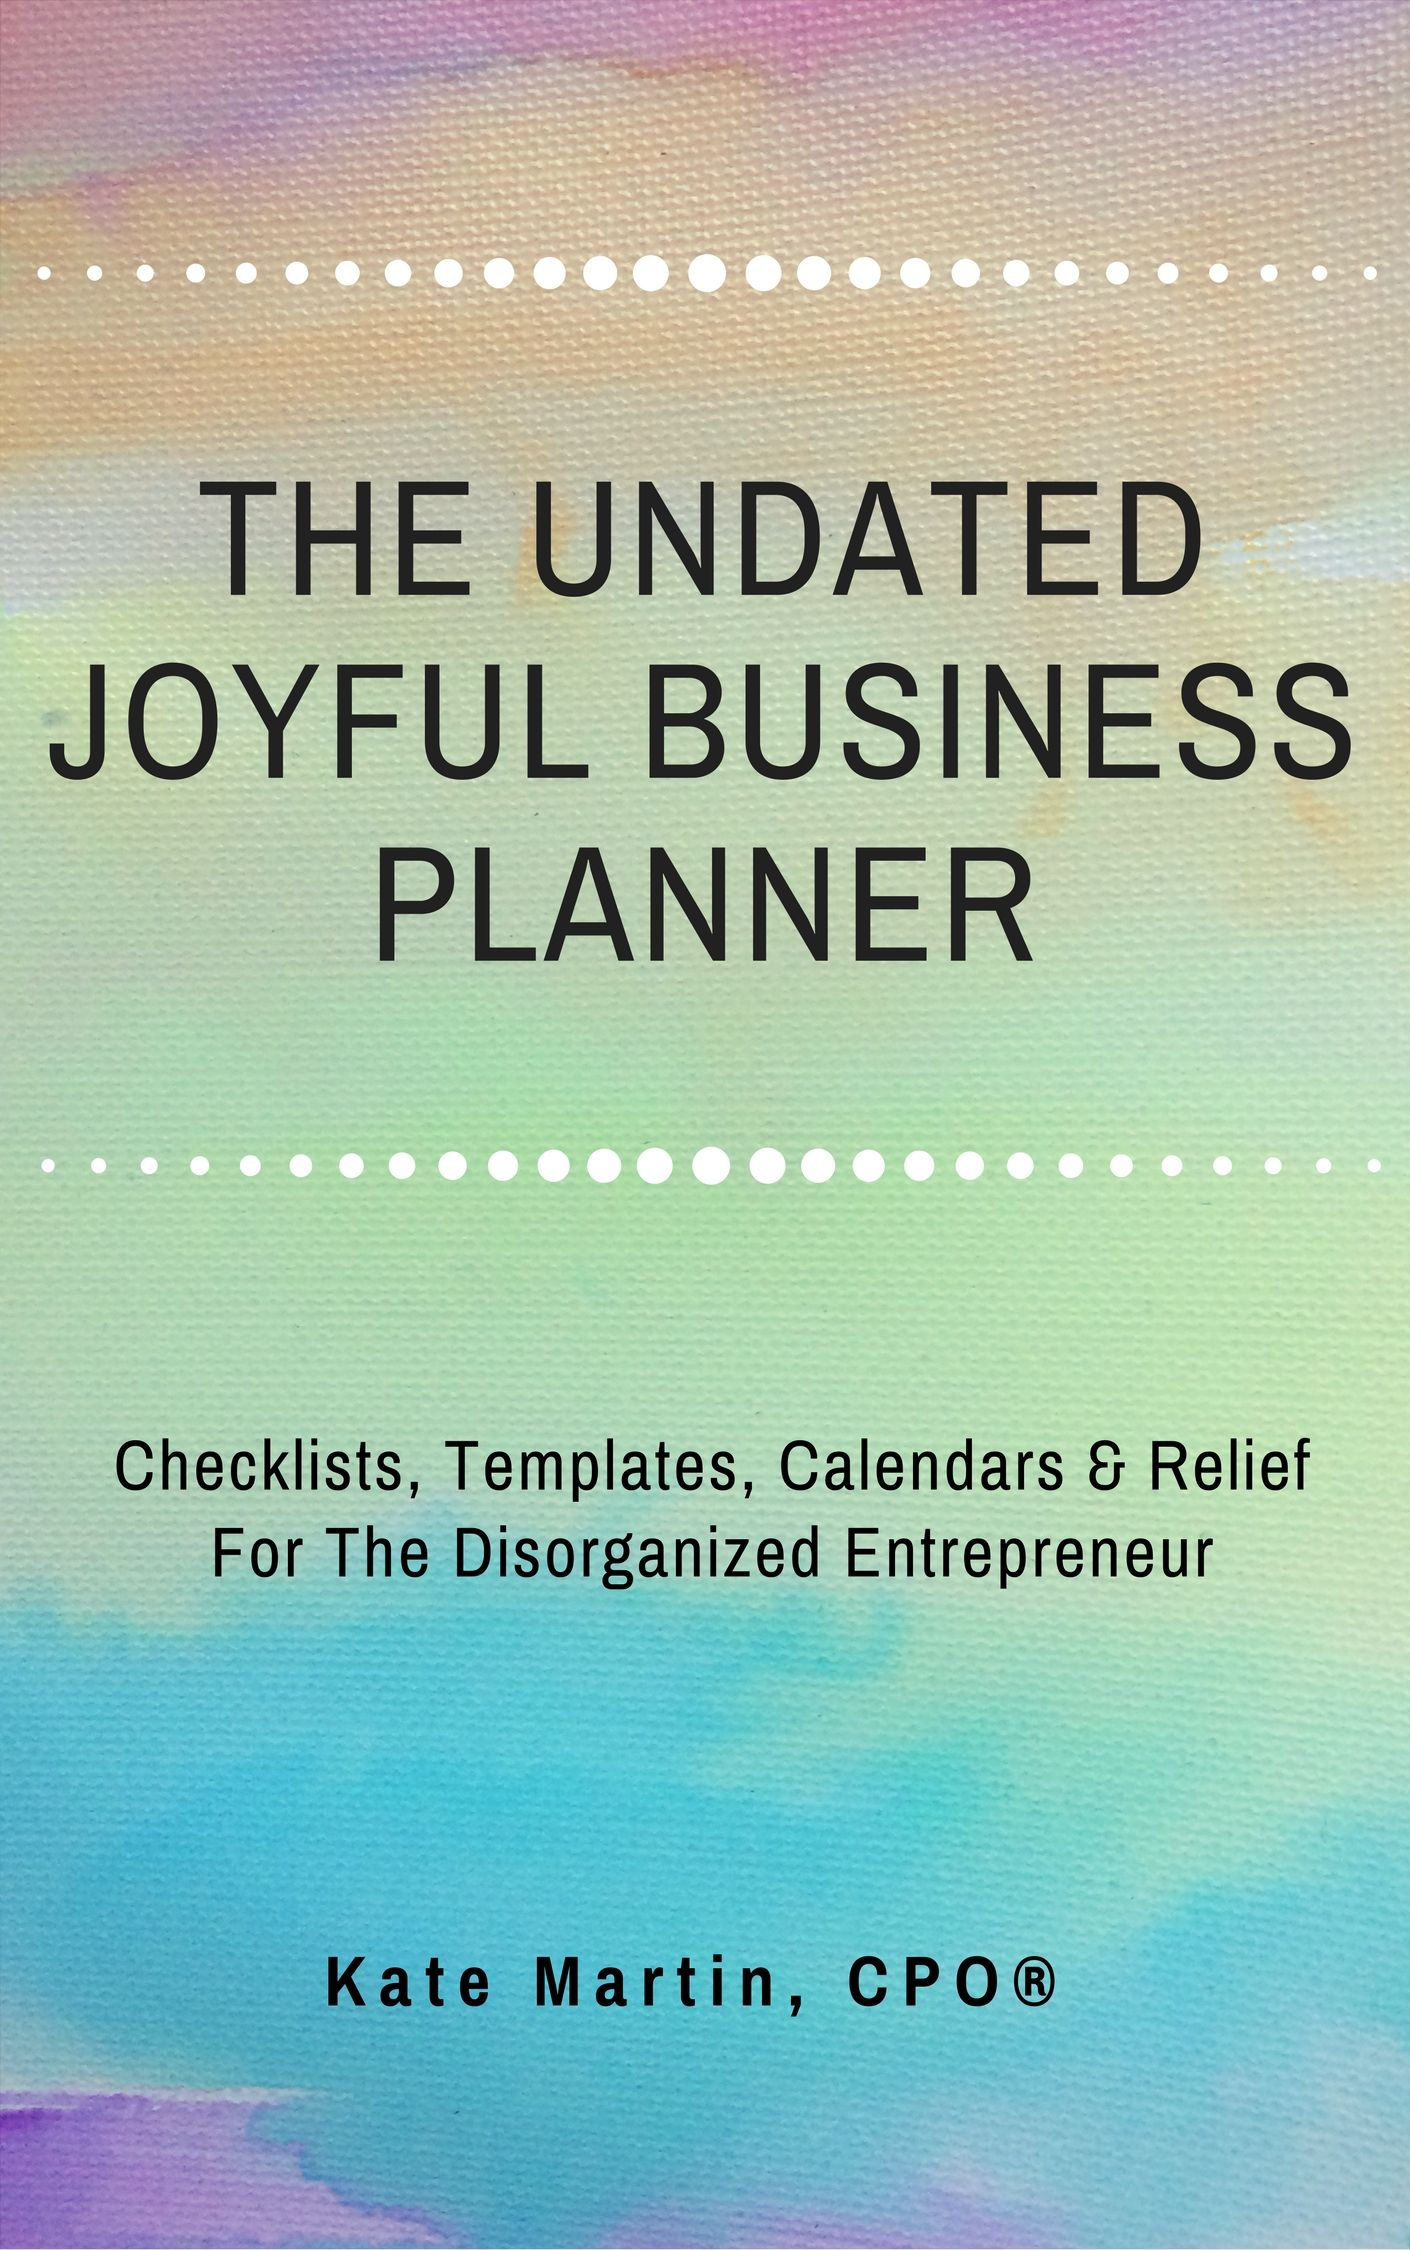 The Undated Joyful Business Planner Is 50 Worksheets